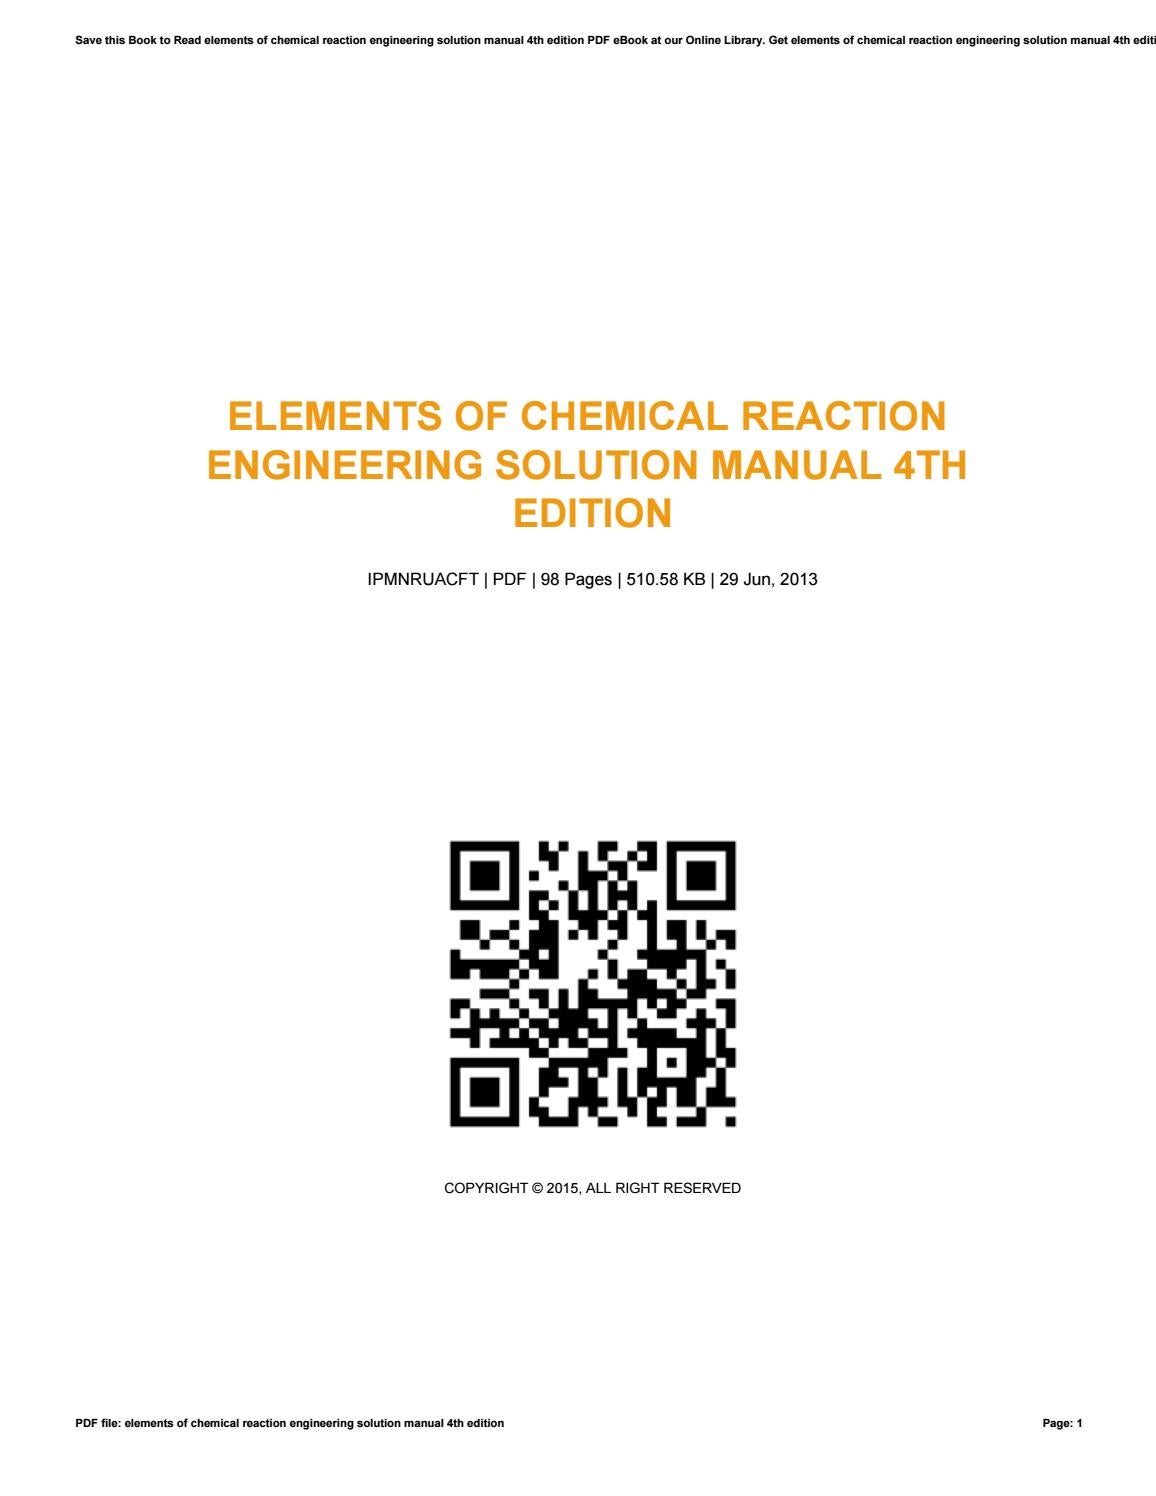 Elements of chemical reaction engineering solution manual 4th edition by  20boxme42 - issuu